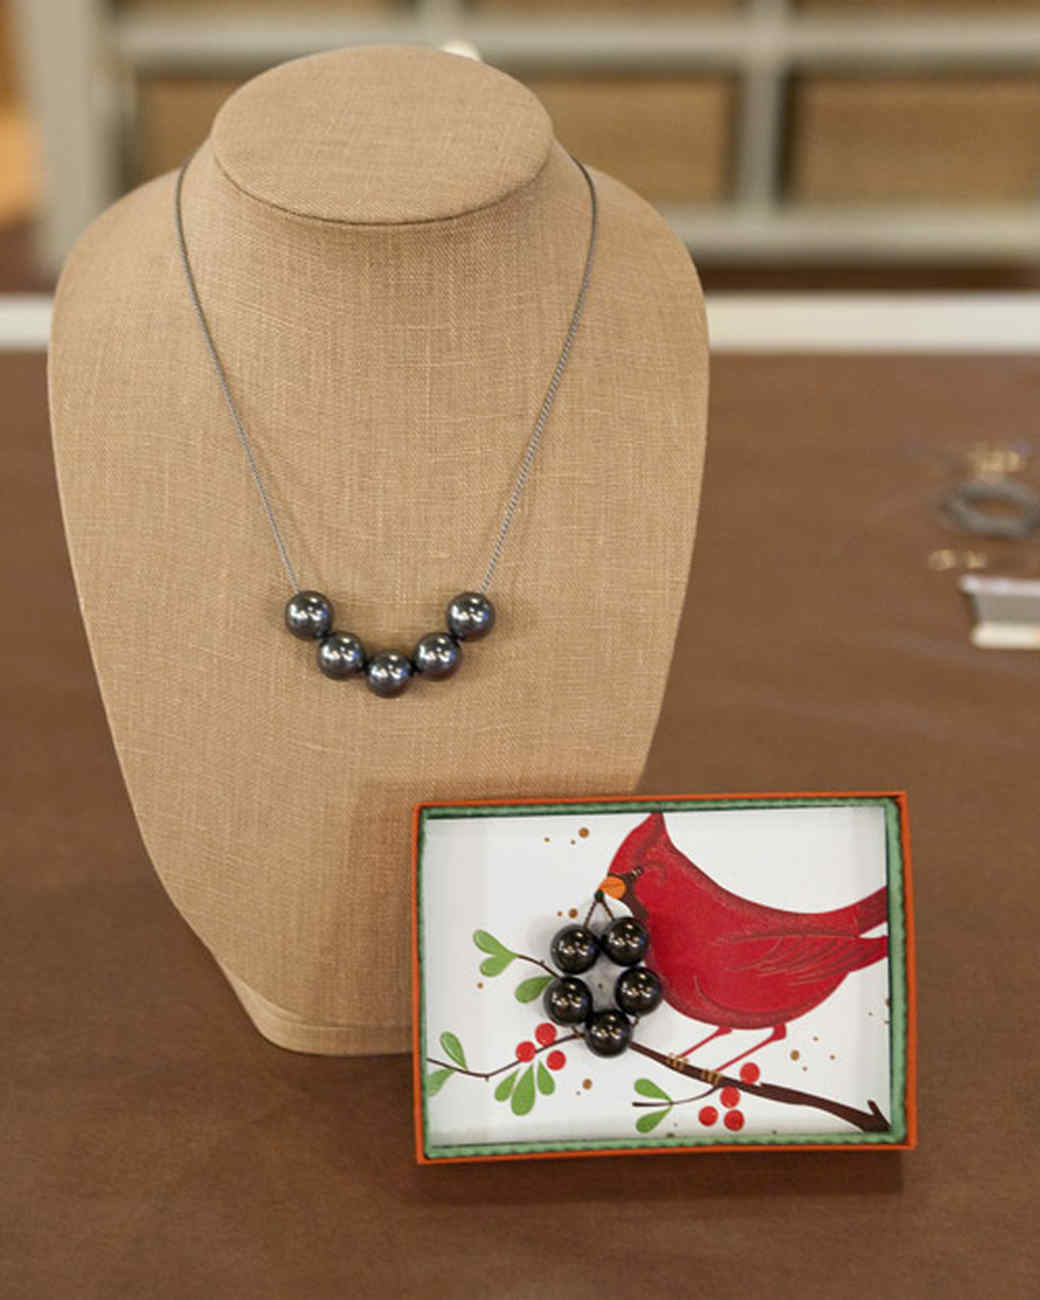 5065_121609_necklace.jpg